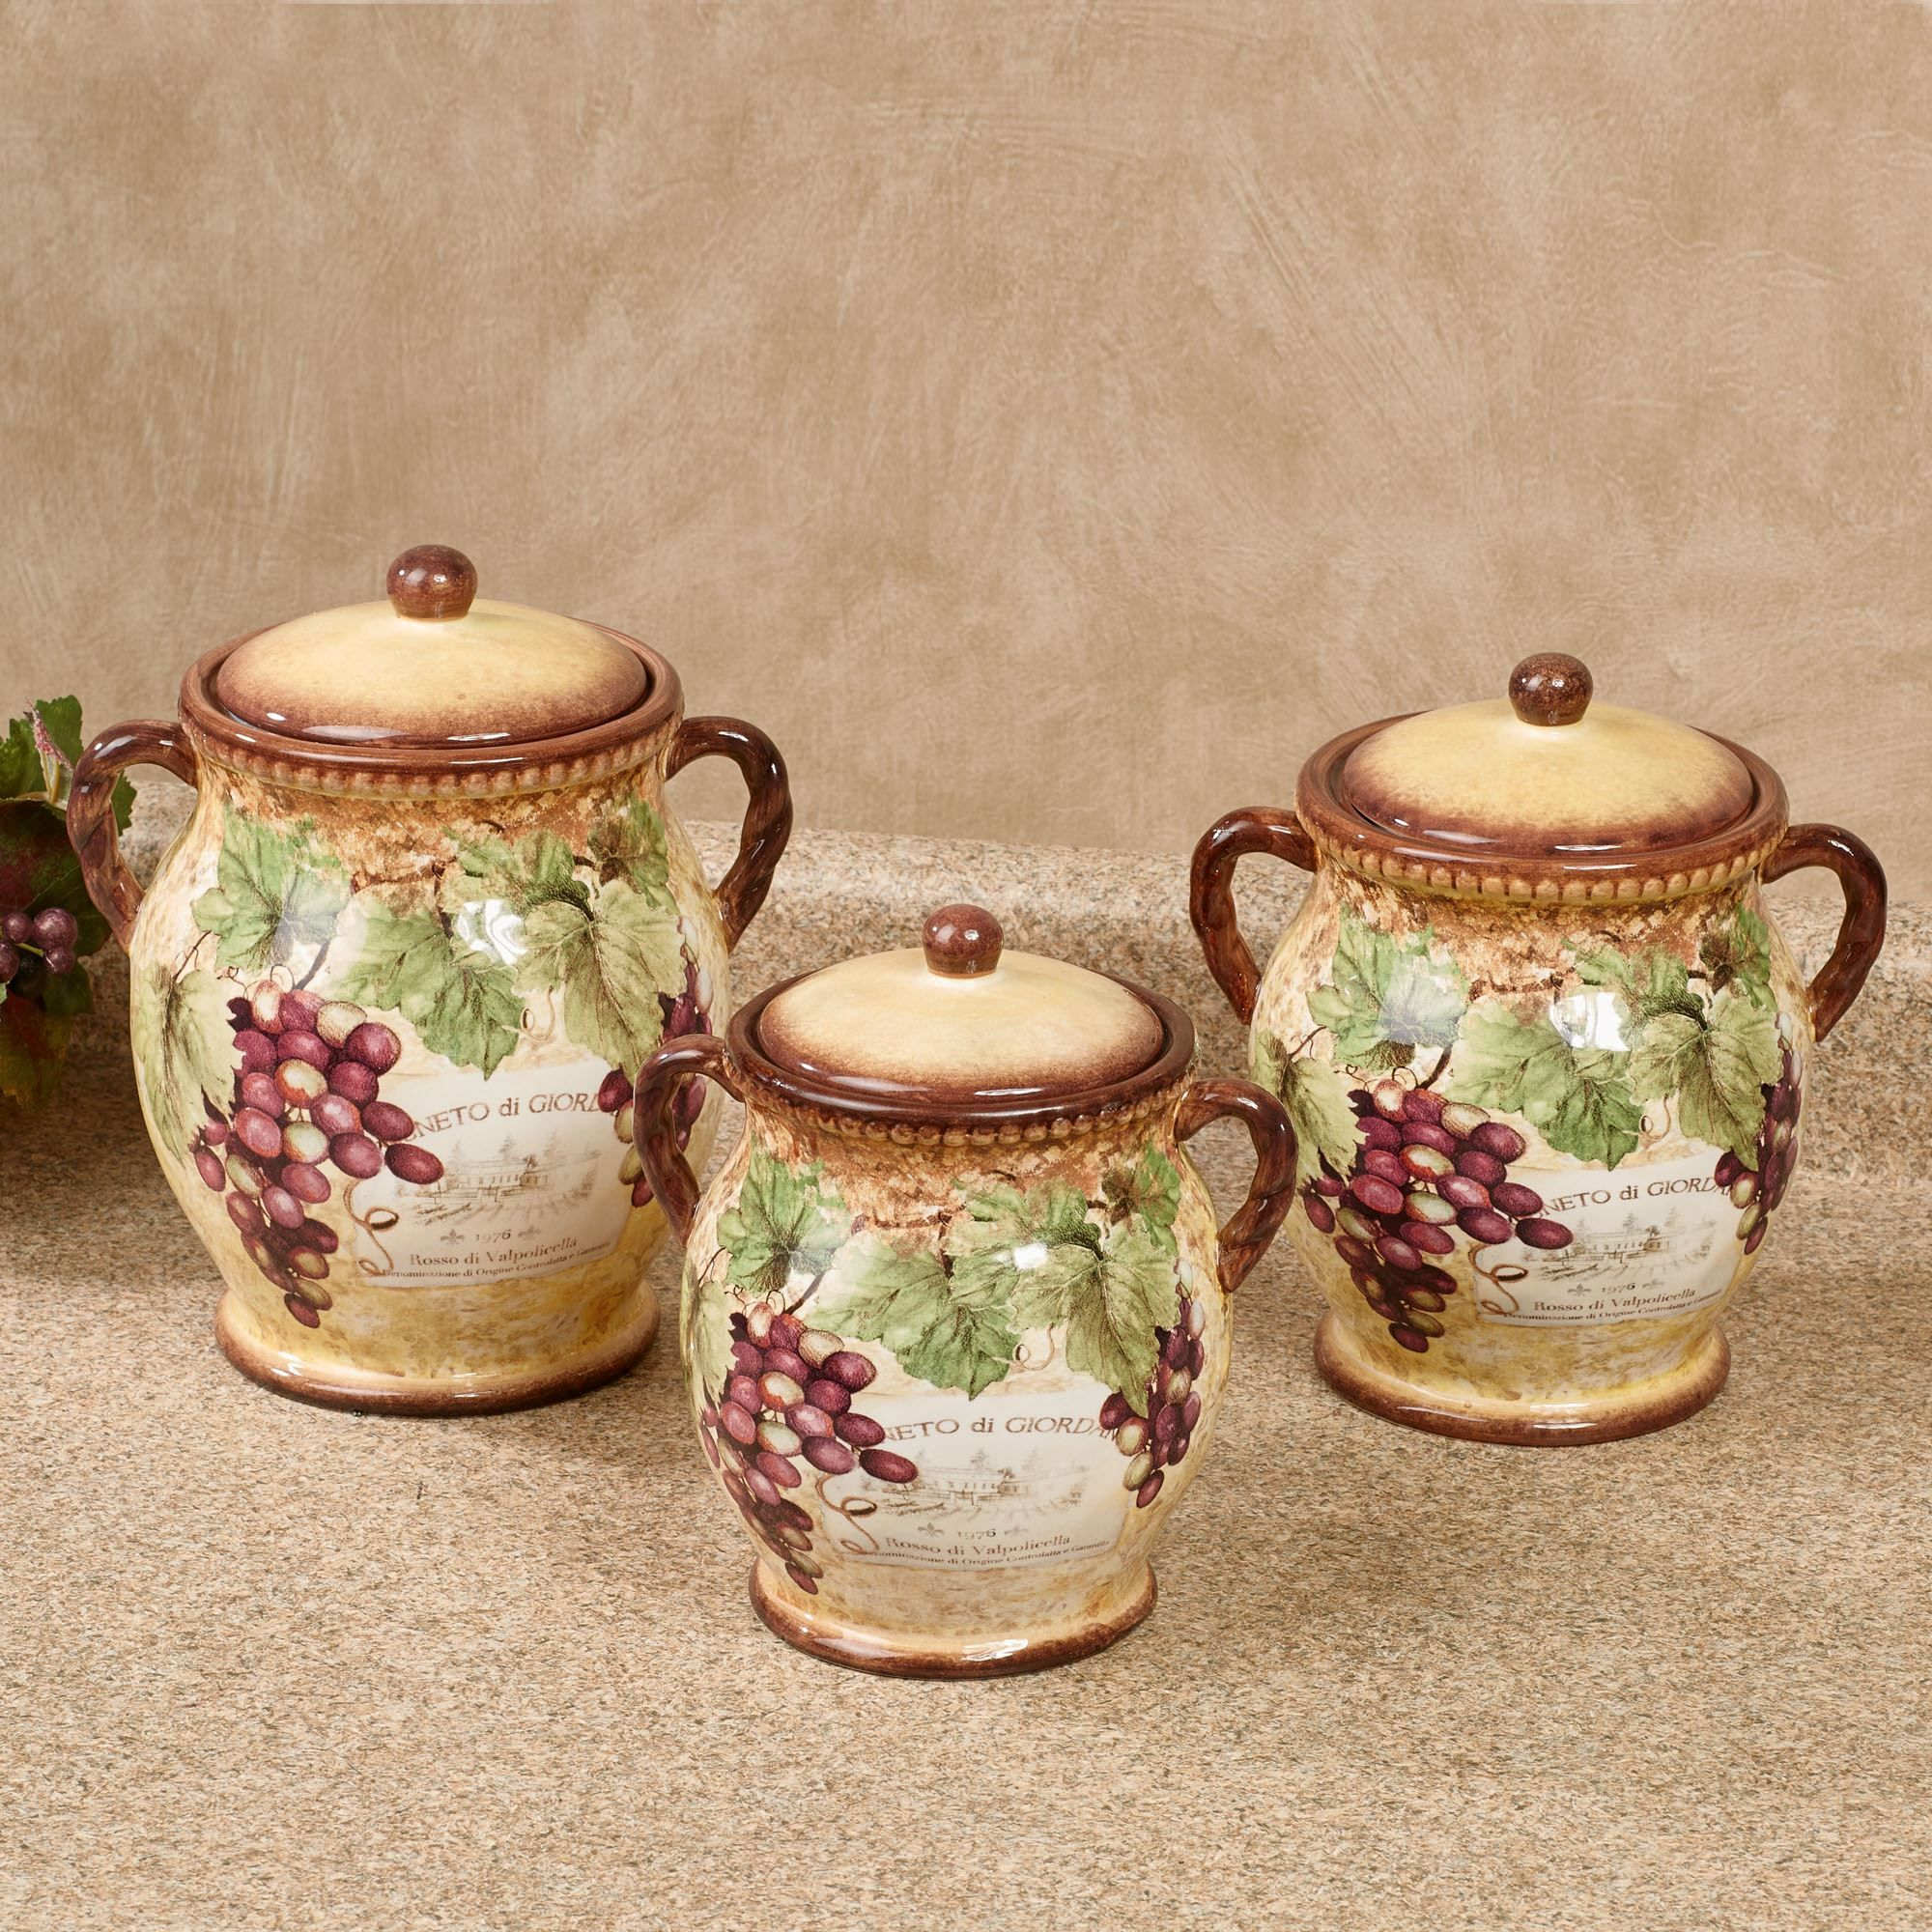 Gilded wine grape themed kitchen canister set with images